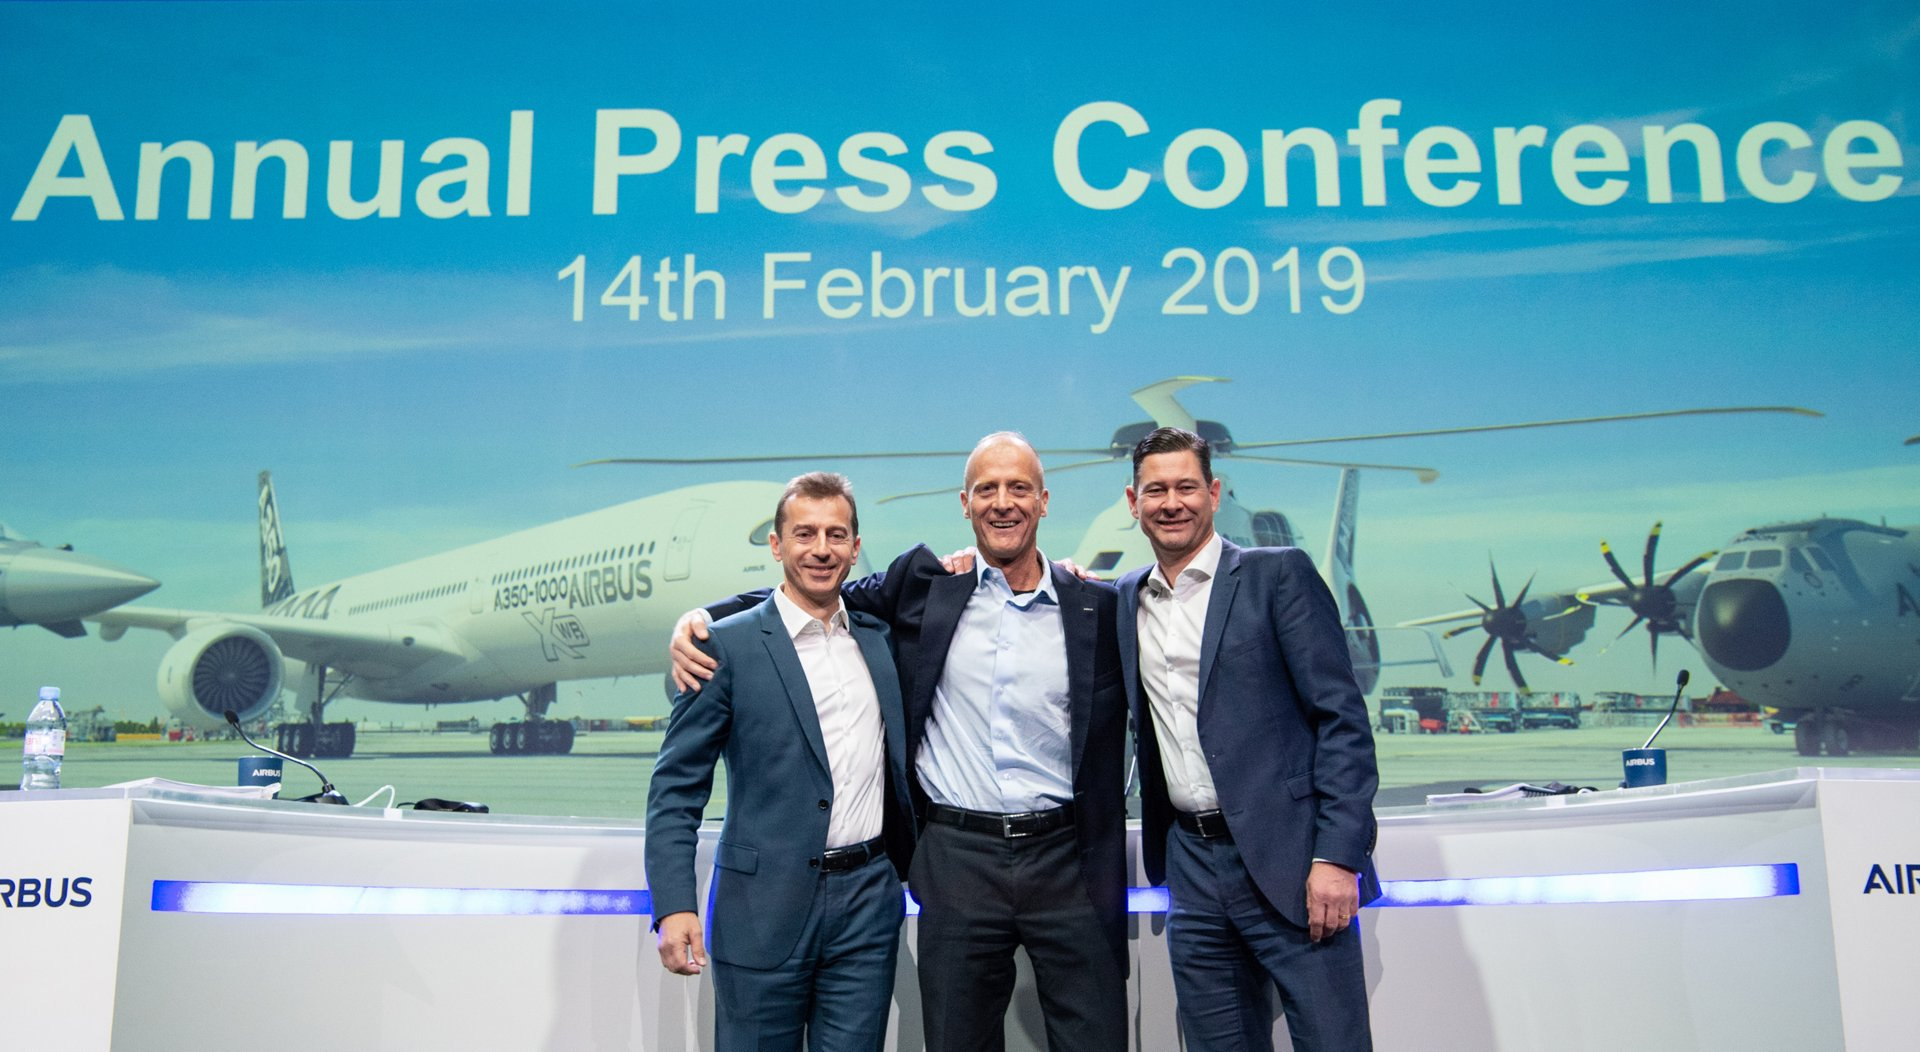 From left to right :  Guillaume Faury, President Airbus Commercial Aircraft  Tom Enders, Chief Executive Officer of Airbus  Harald Wilhelm, Chief Financial Officer, Airbus